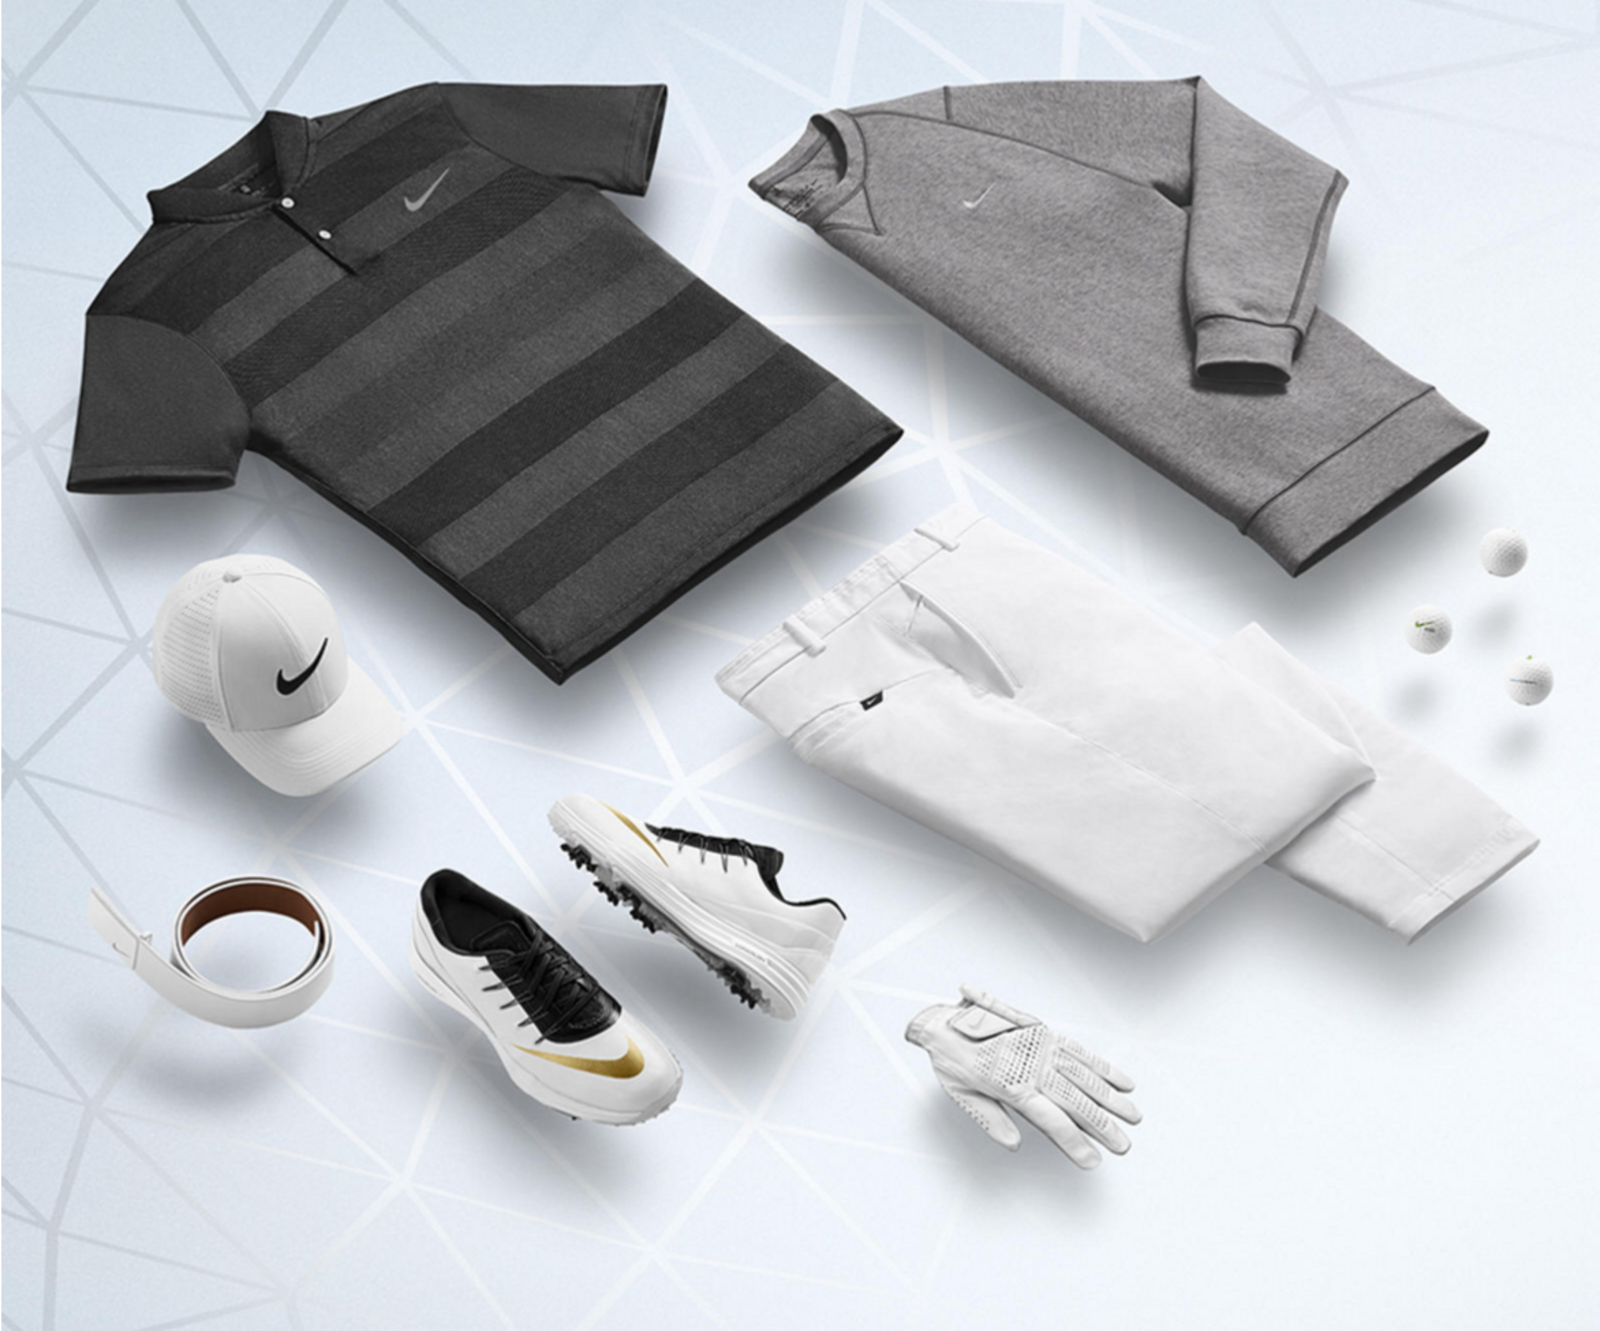 bcc353a0 New Polo Designs Hit the Big Stage - Nike News